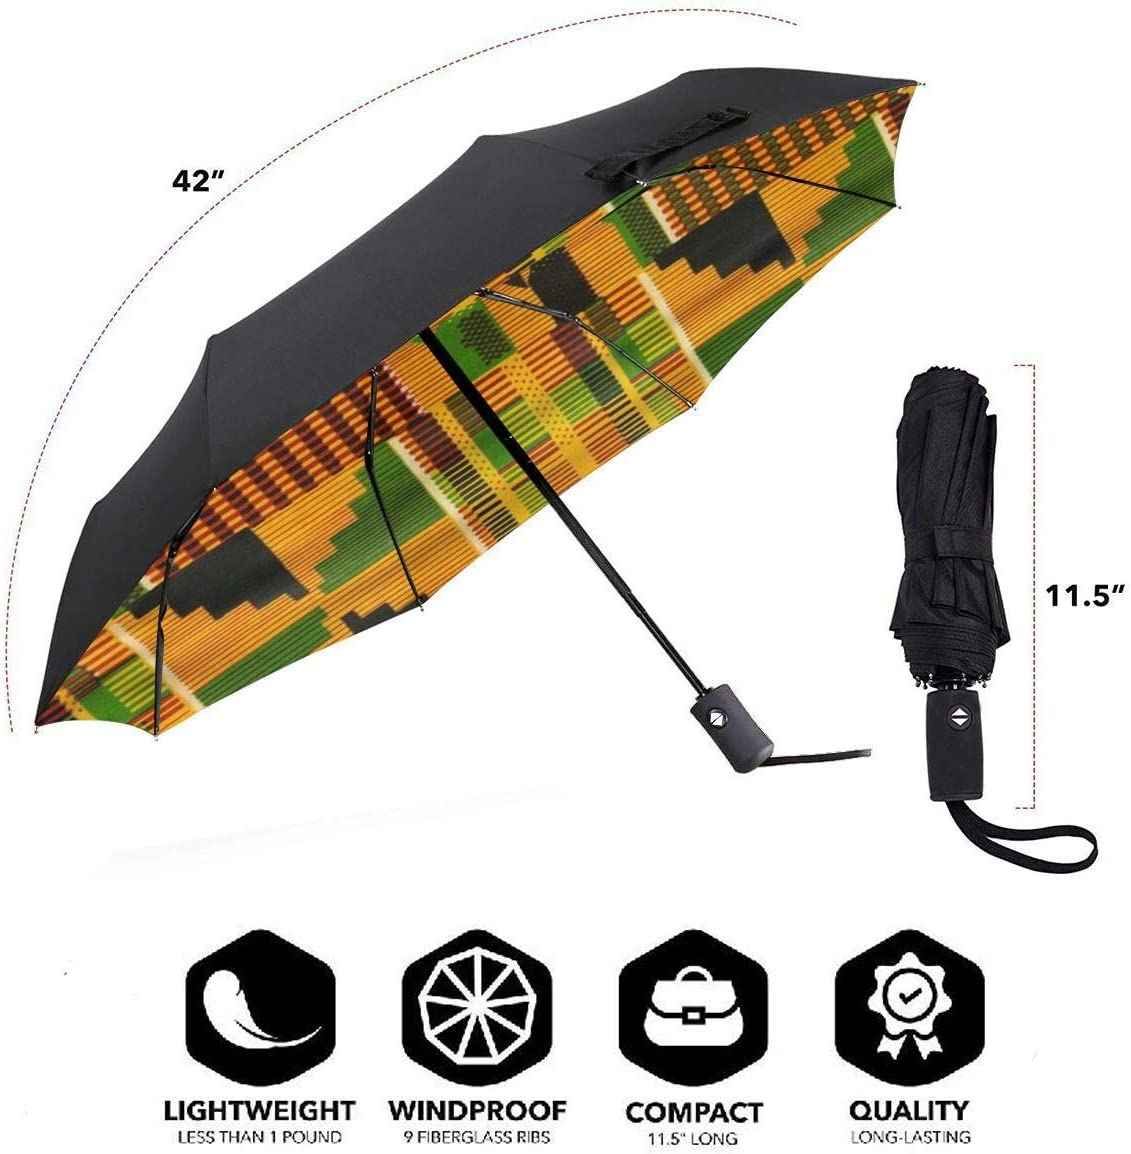 African Theme Automatic Windproof Travel Umbrella Compact Canopy With Black Glue And UV-resistant Coating